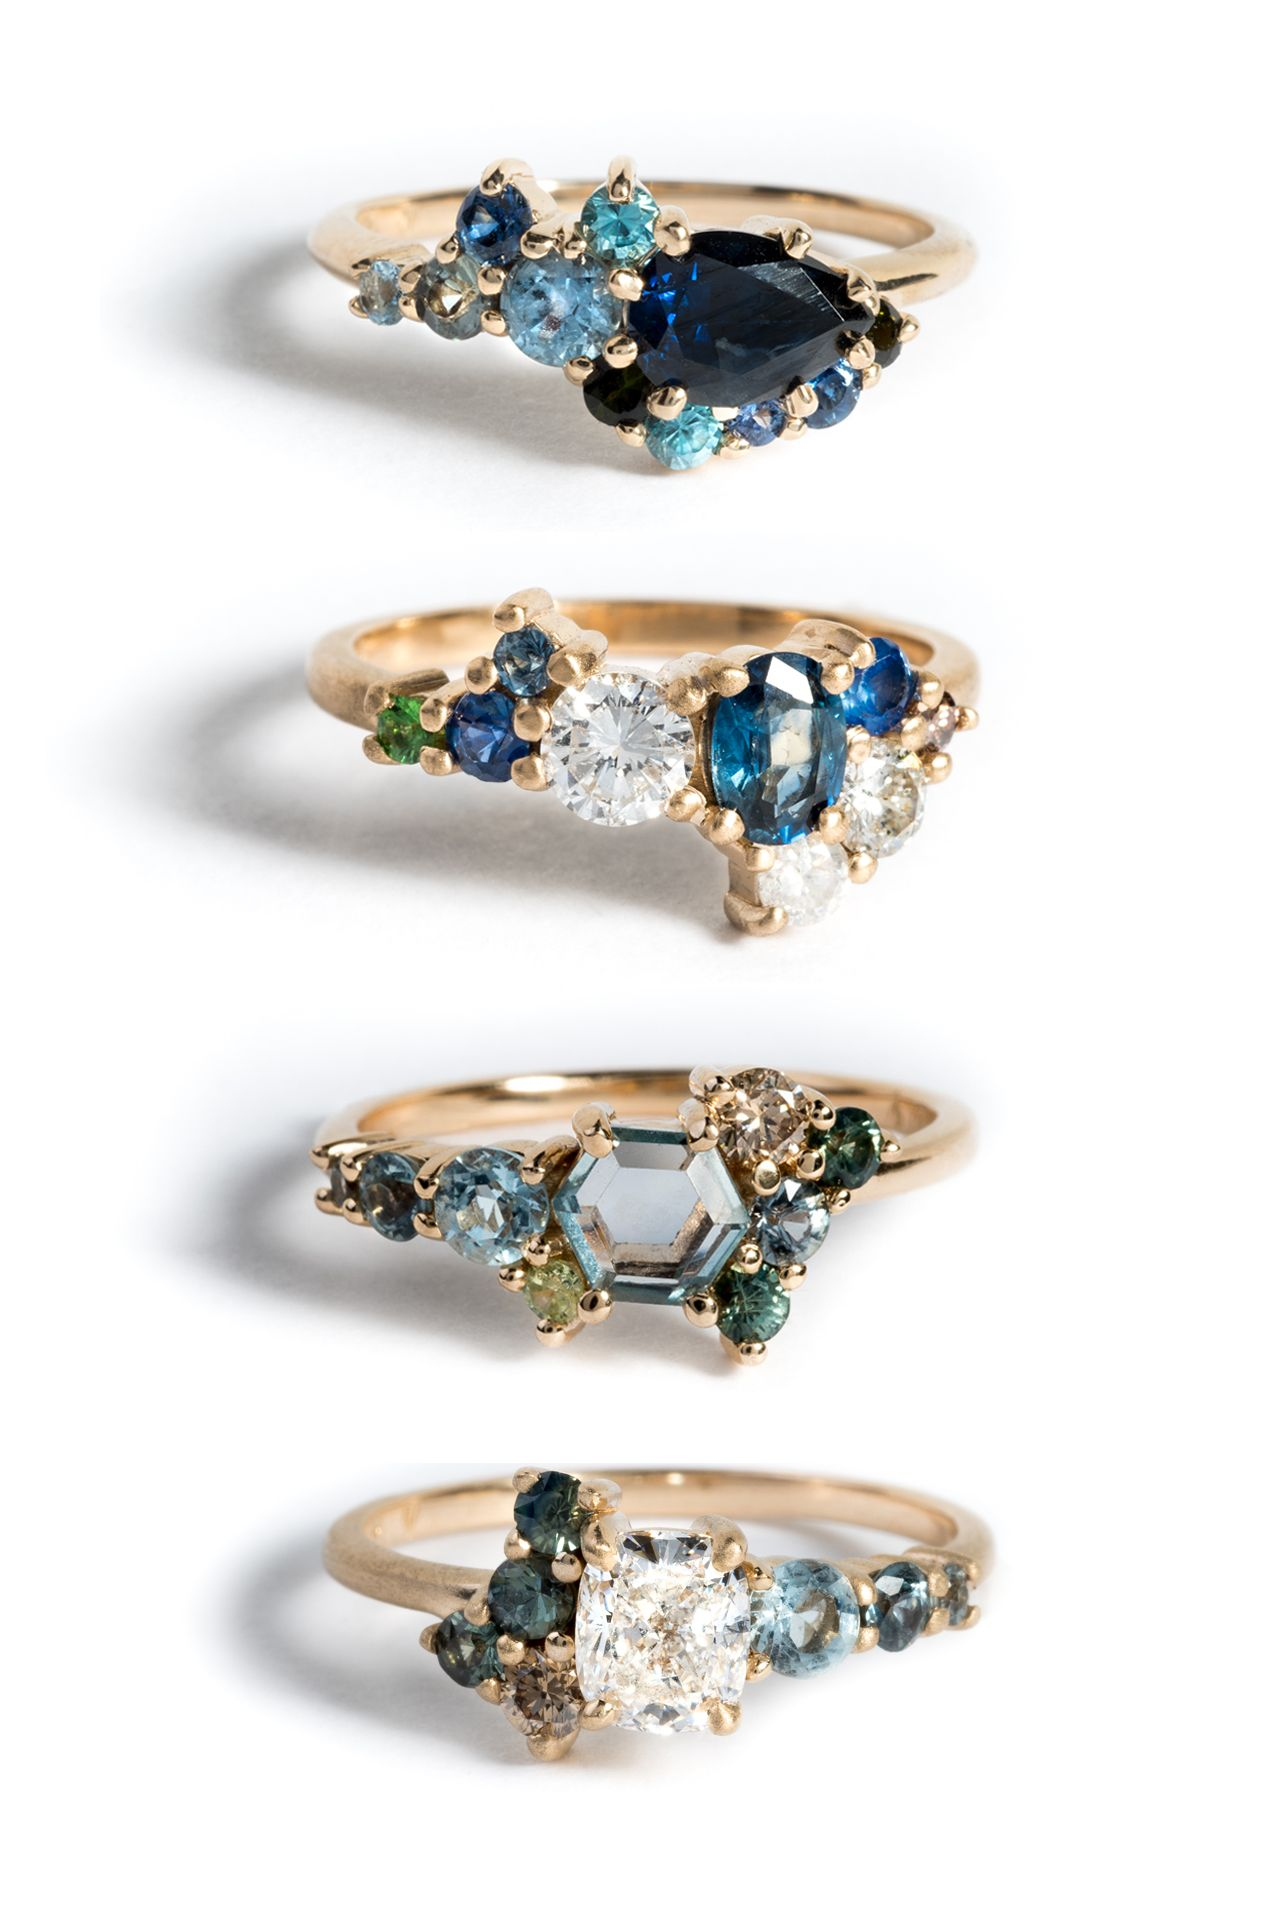 pinterest rings stone things ring other pin ancient blue petty